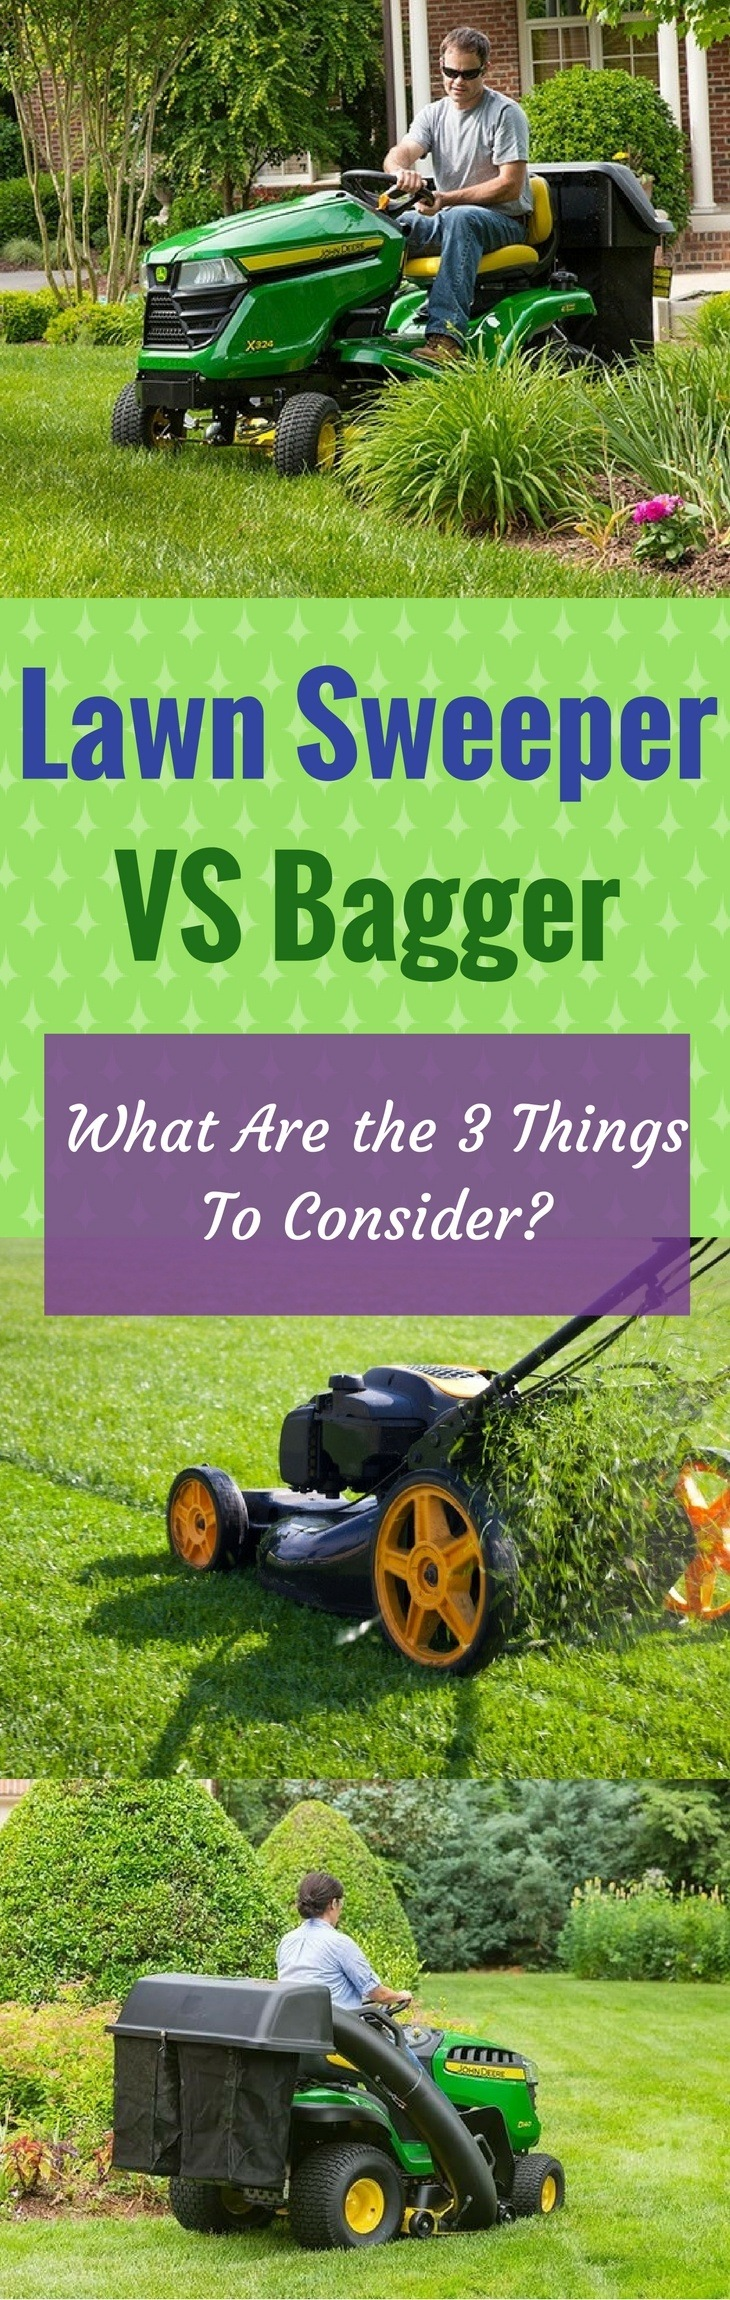 Lawn Sweeper vs Bagger: What Are the 3 Things To Consider?